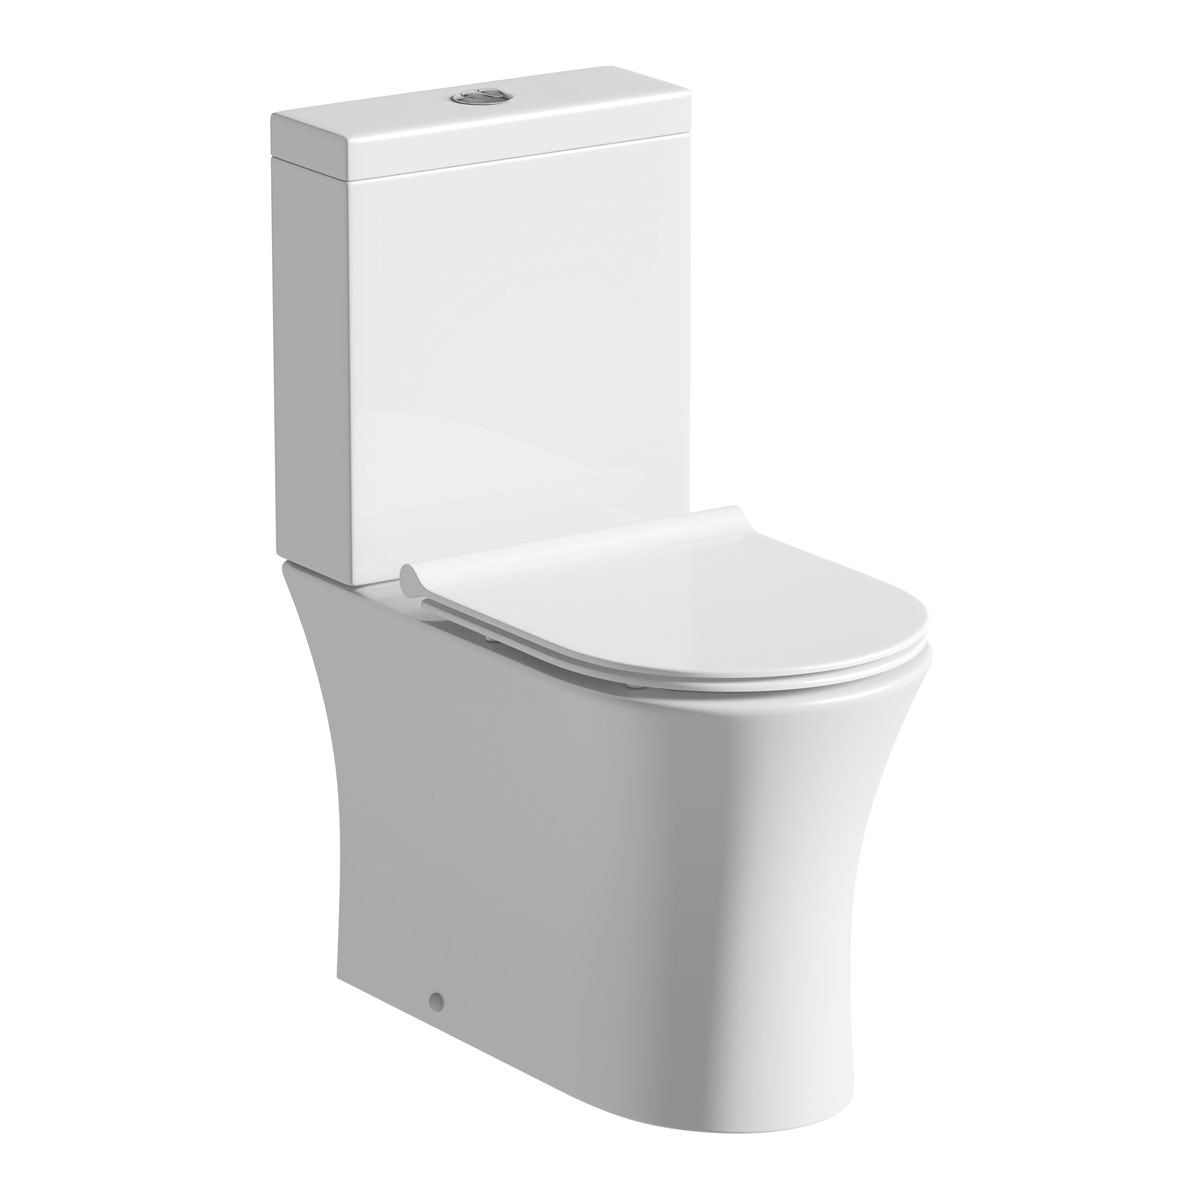 Mode Hardy close coupled toilet inc slimline soft close seat